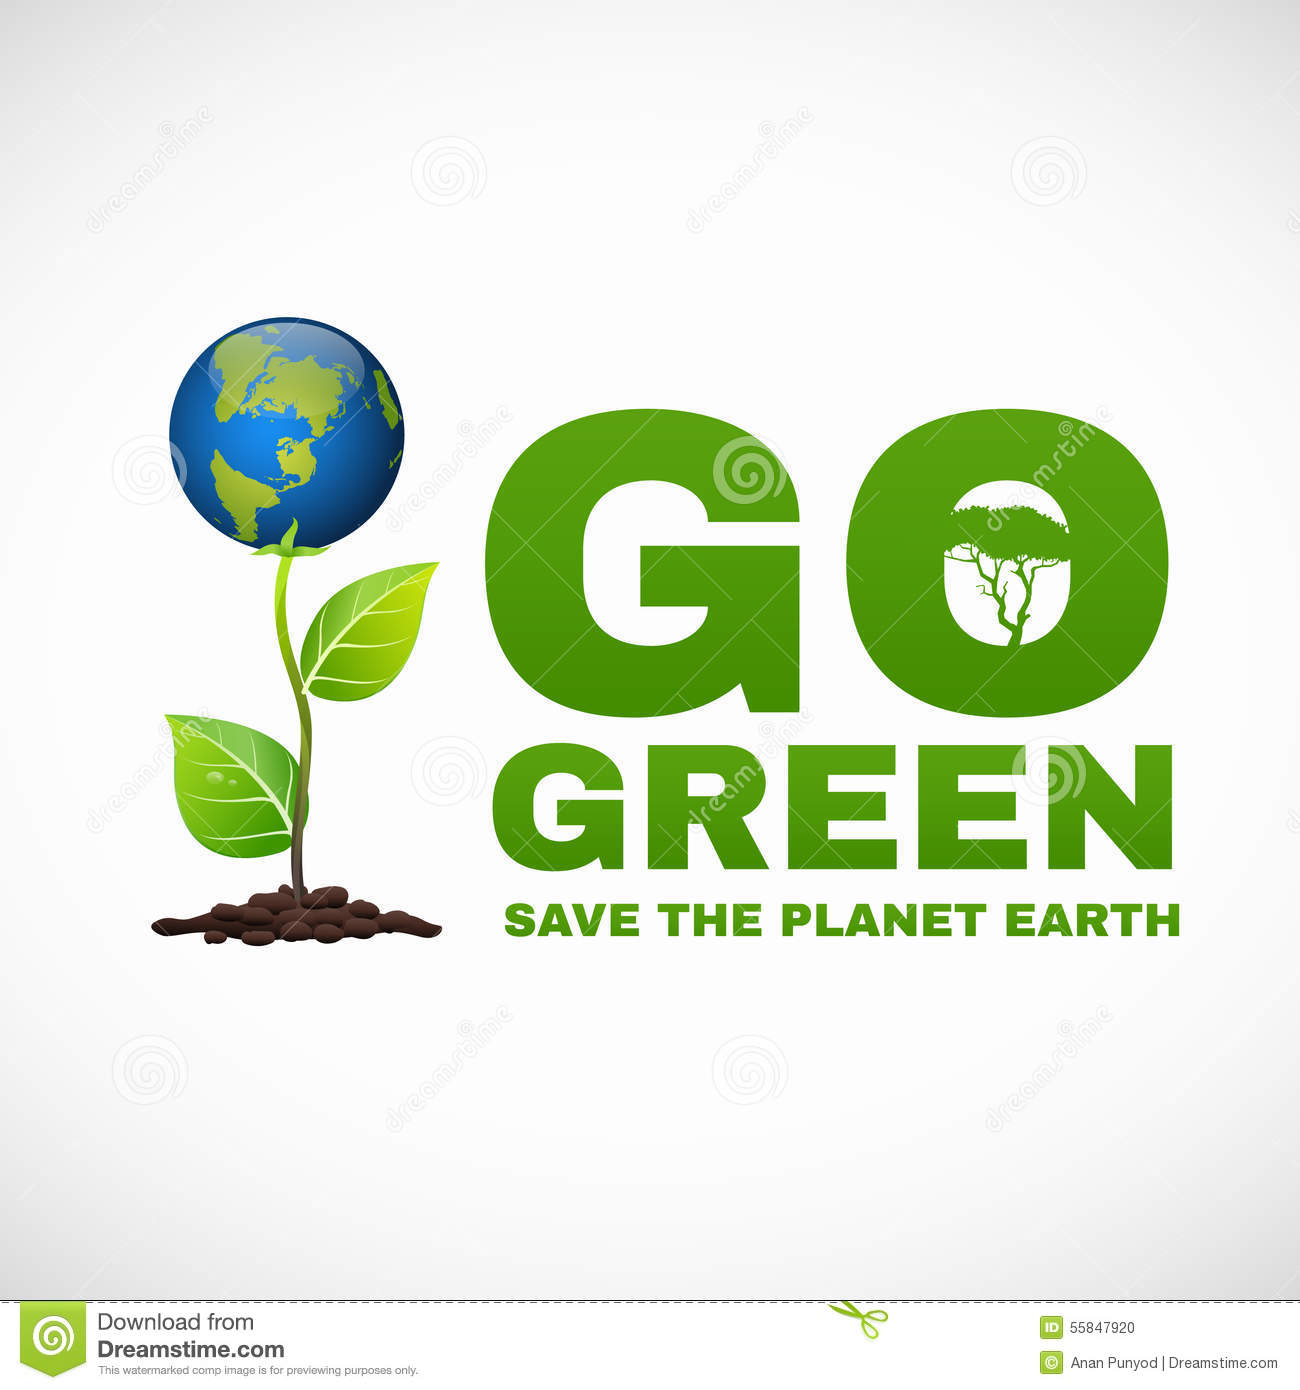 https://thumbs.dreamstime.com/z/go-green-save-planet-earth-world-tree-55847920.jpg